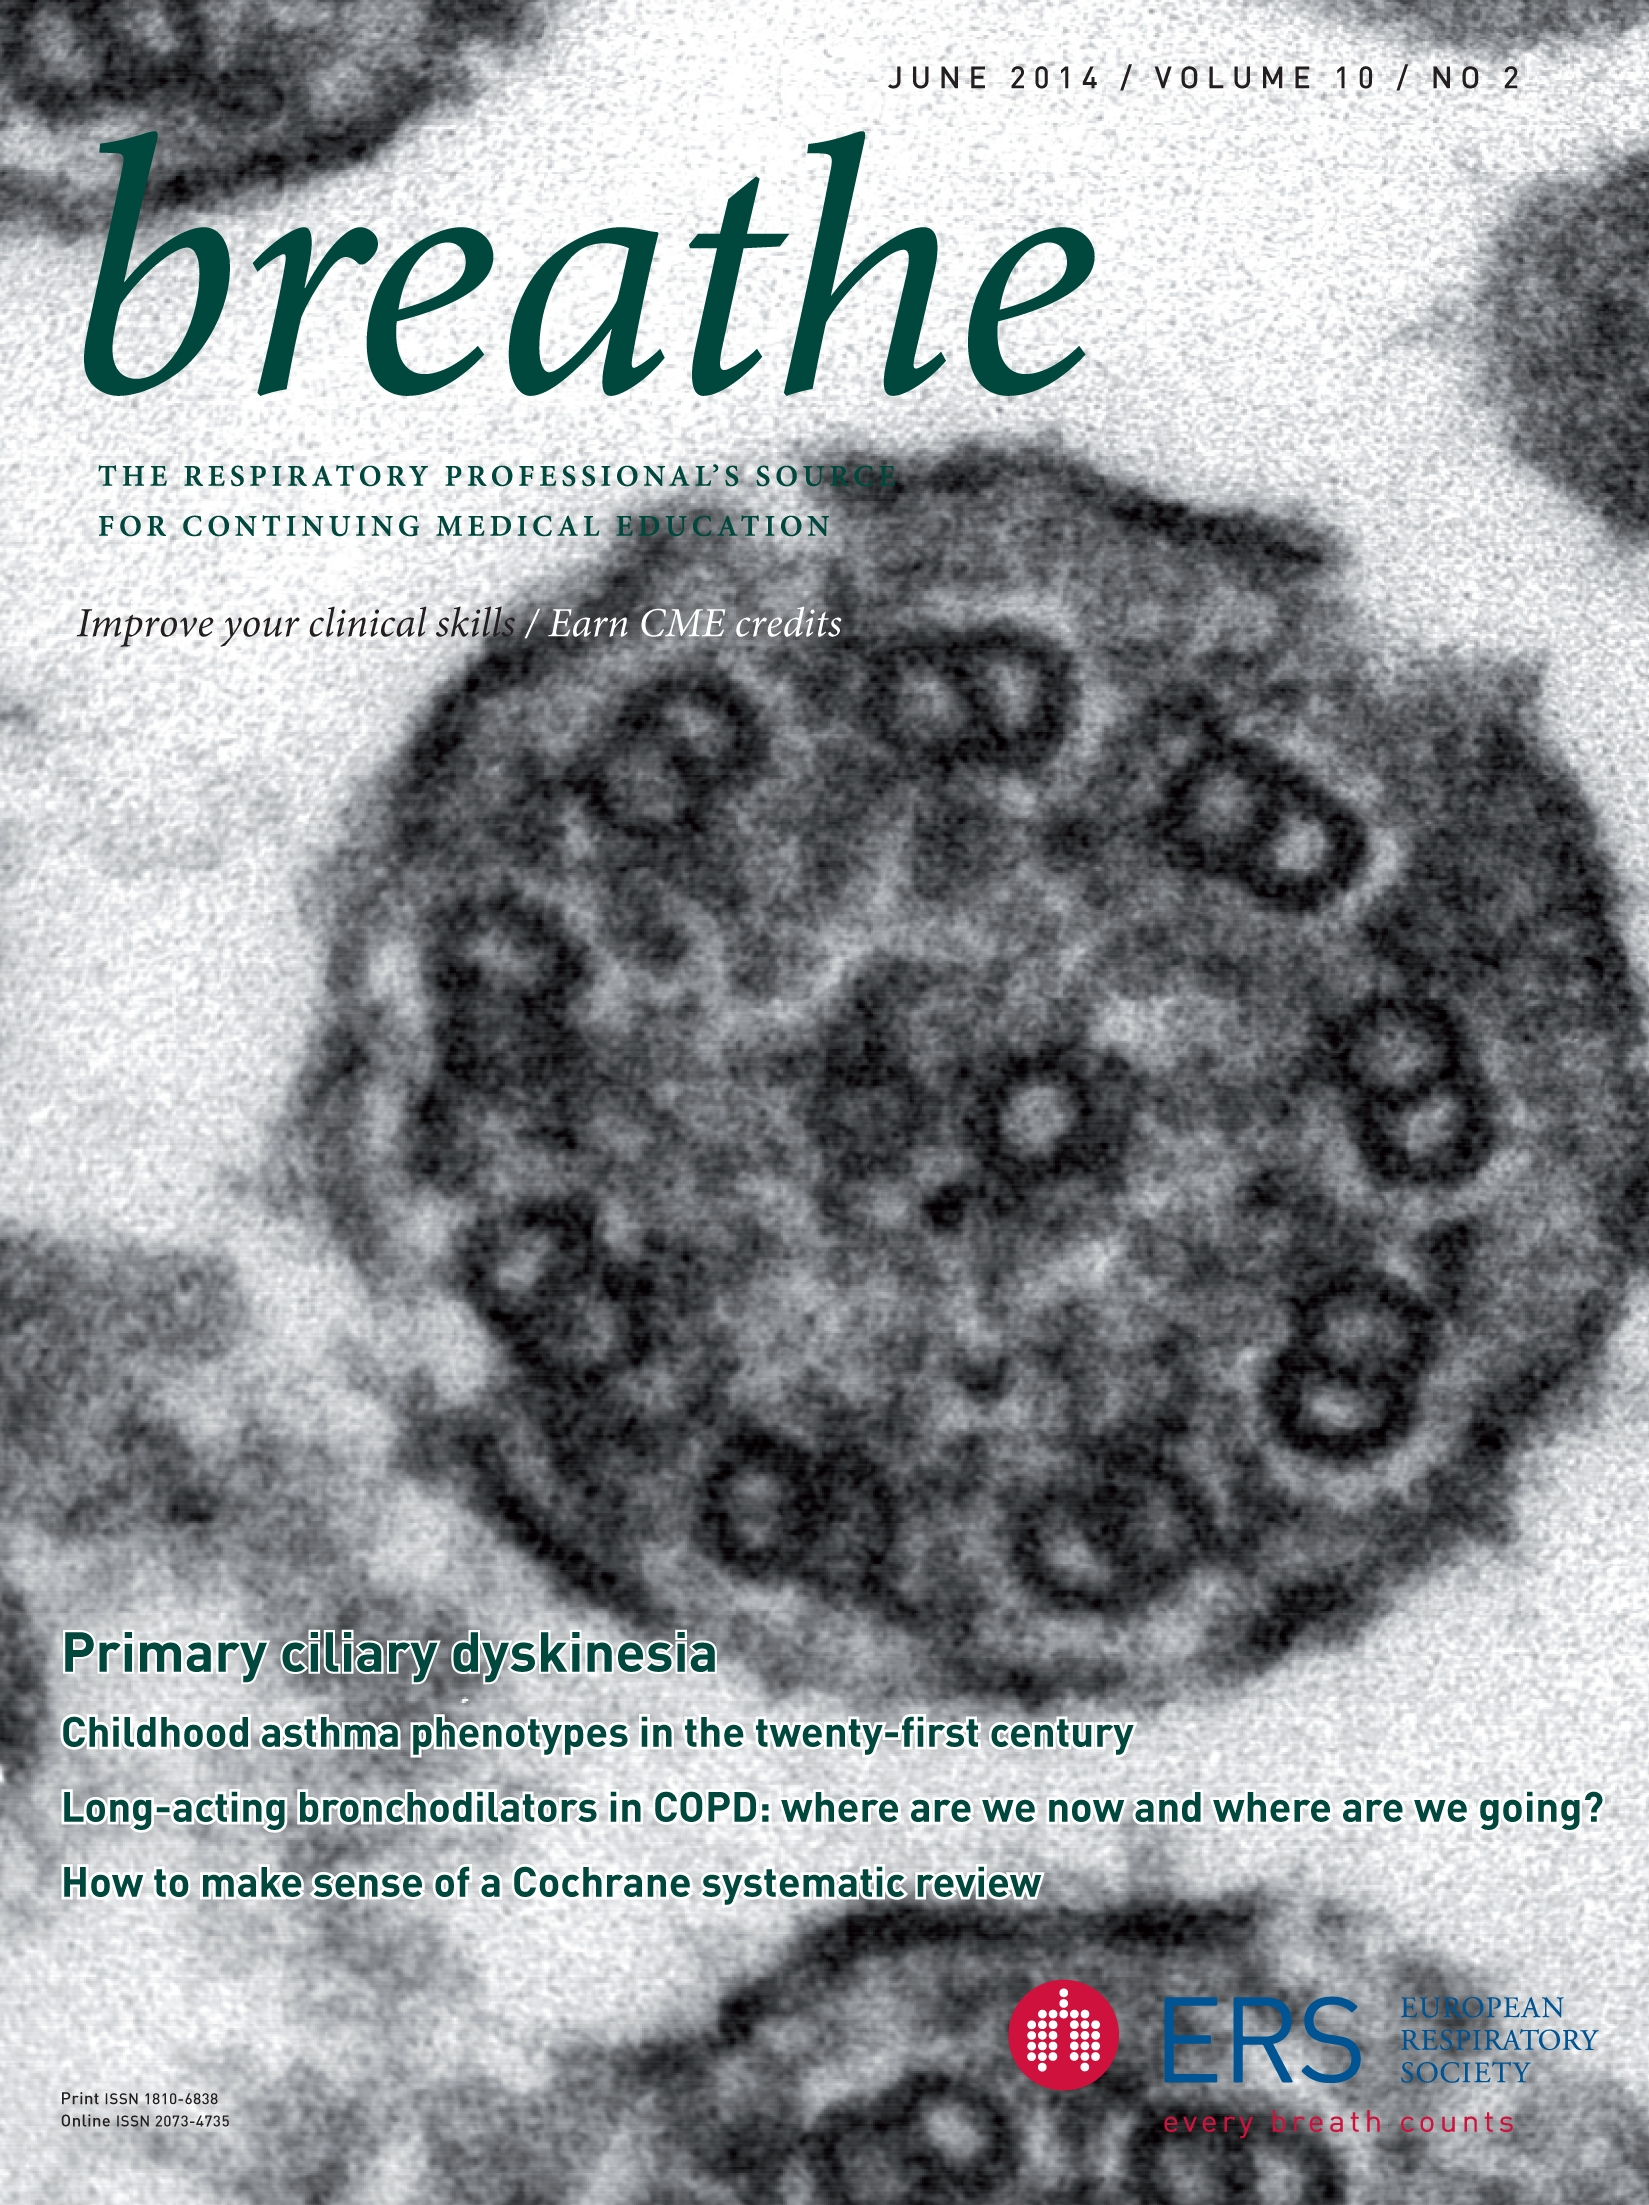 How to make sense of a Cochrane systematic review | European Respiratory Society